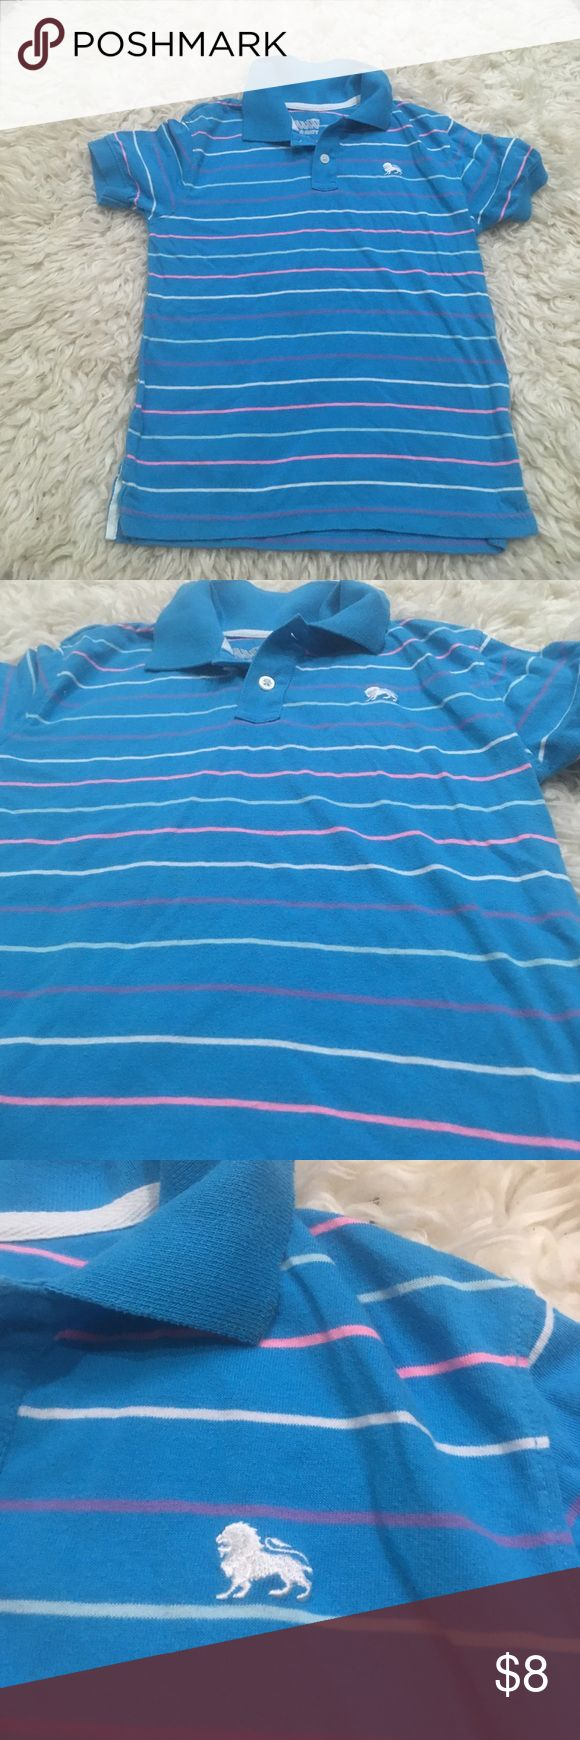 Boys blue polo shirt with pink stripes Stylish little boy's shirt, old navy Old Navy Shirts & Tops Polos